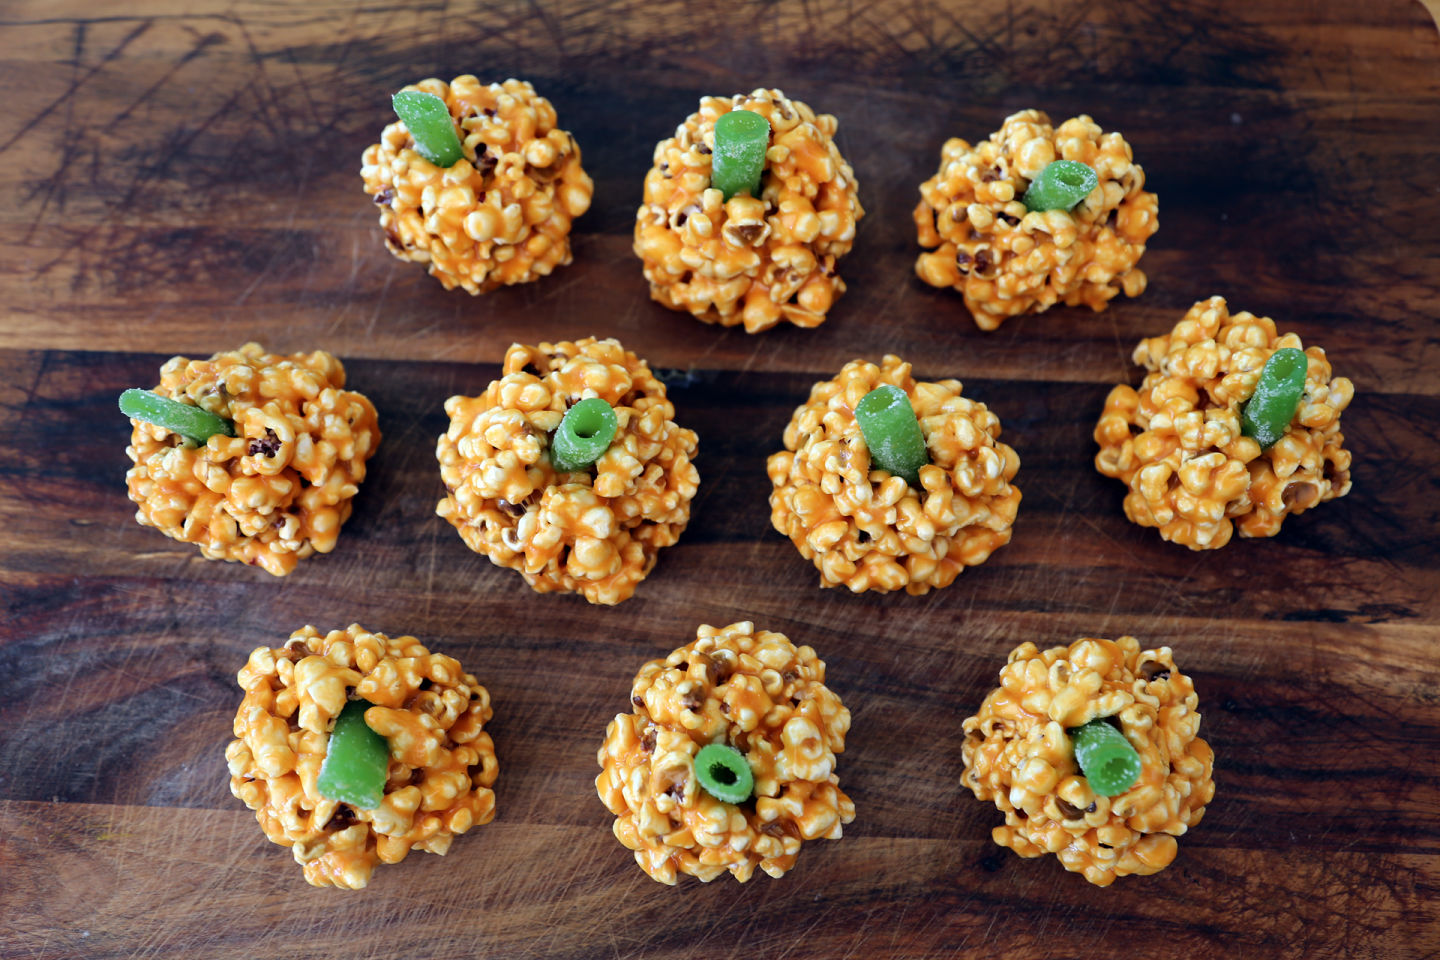 Salted Caramel Popcorn Jack-O-Lanterns With Green Candy Stems Wendy Goodfriend